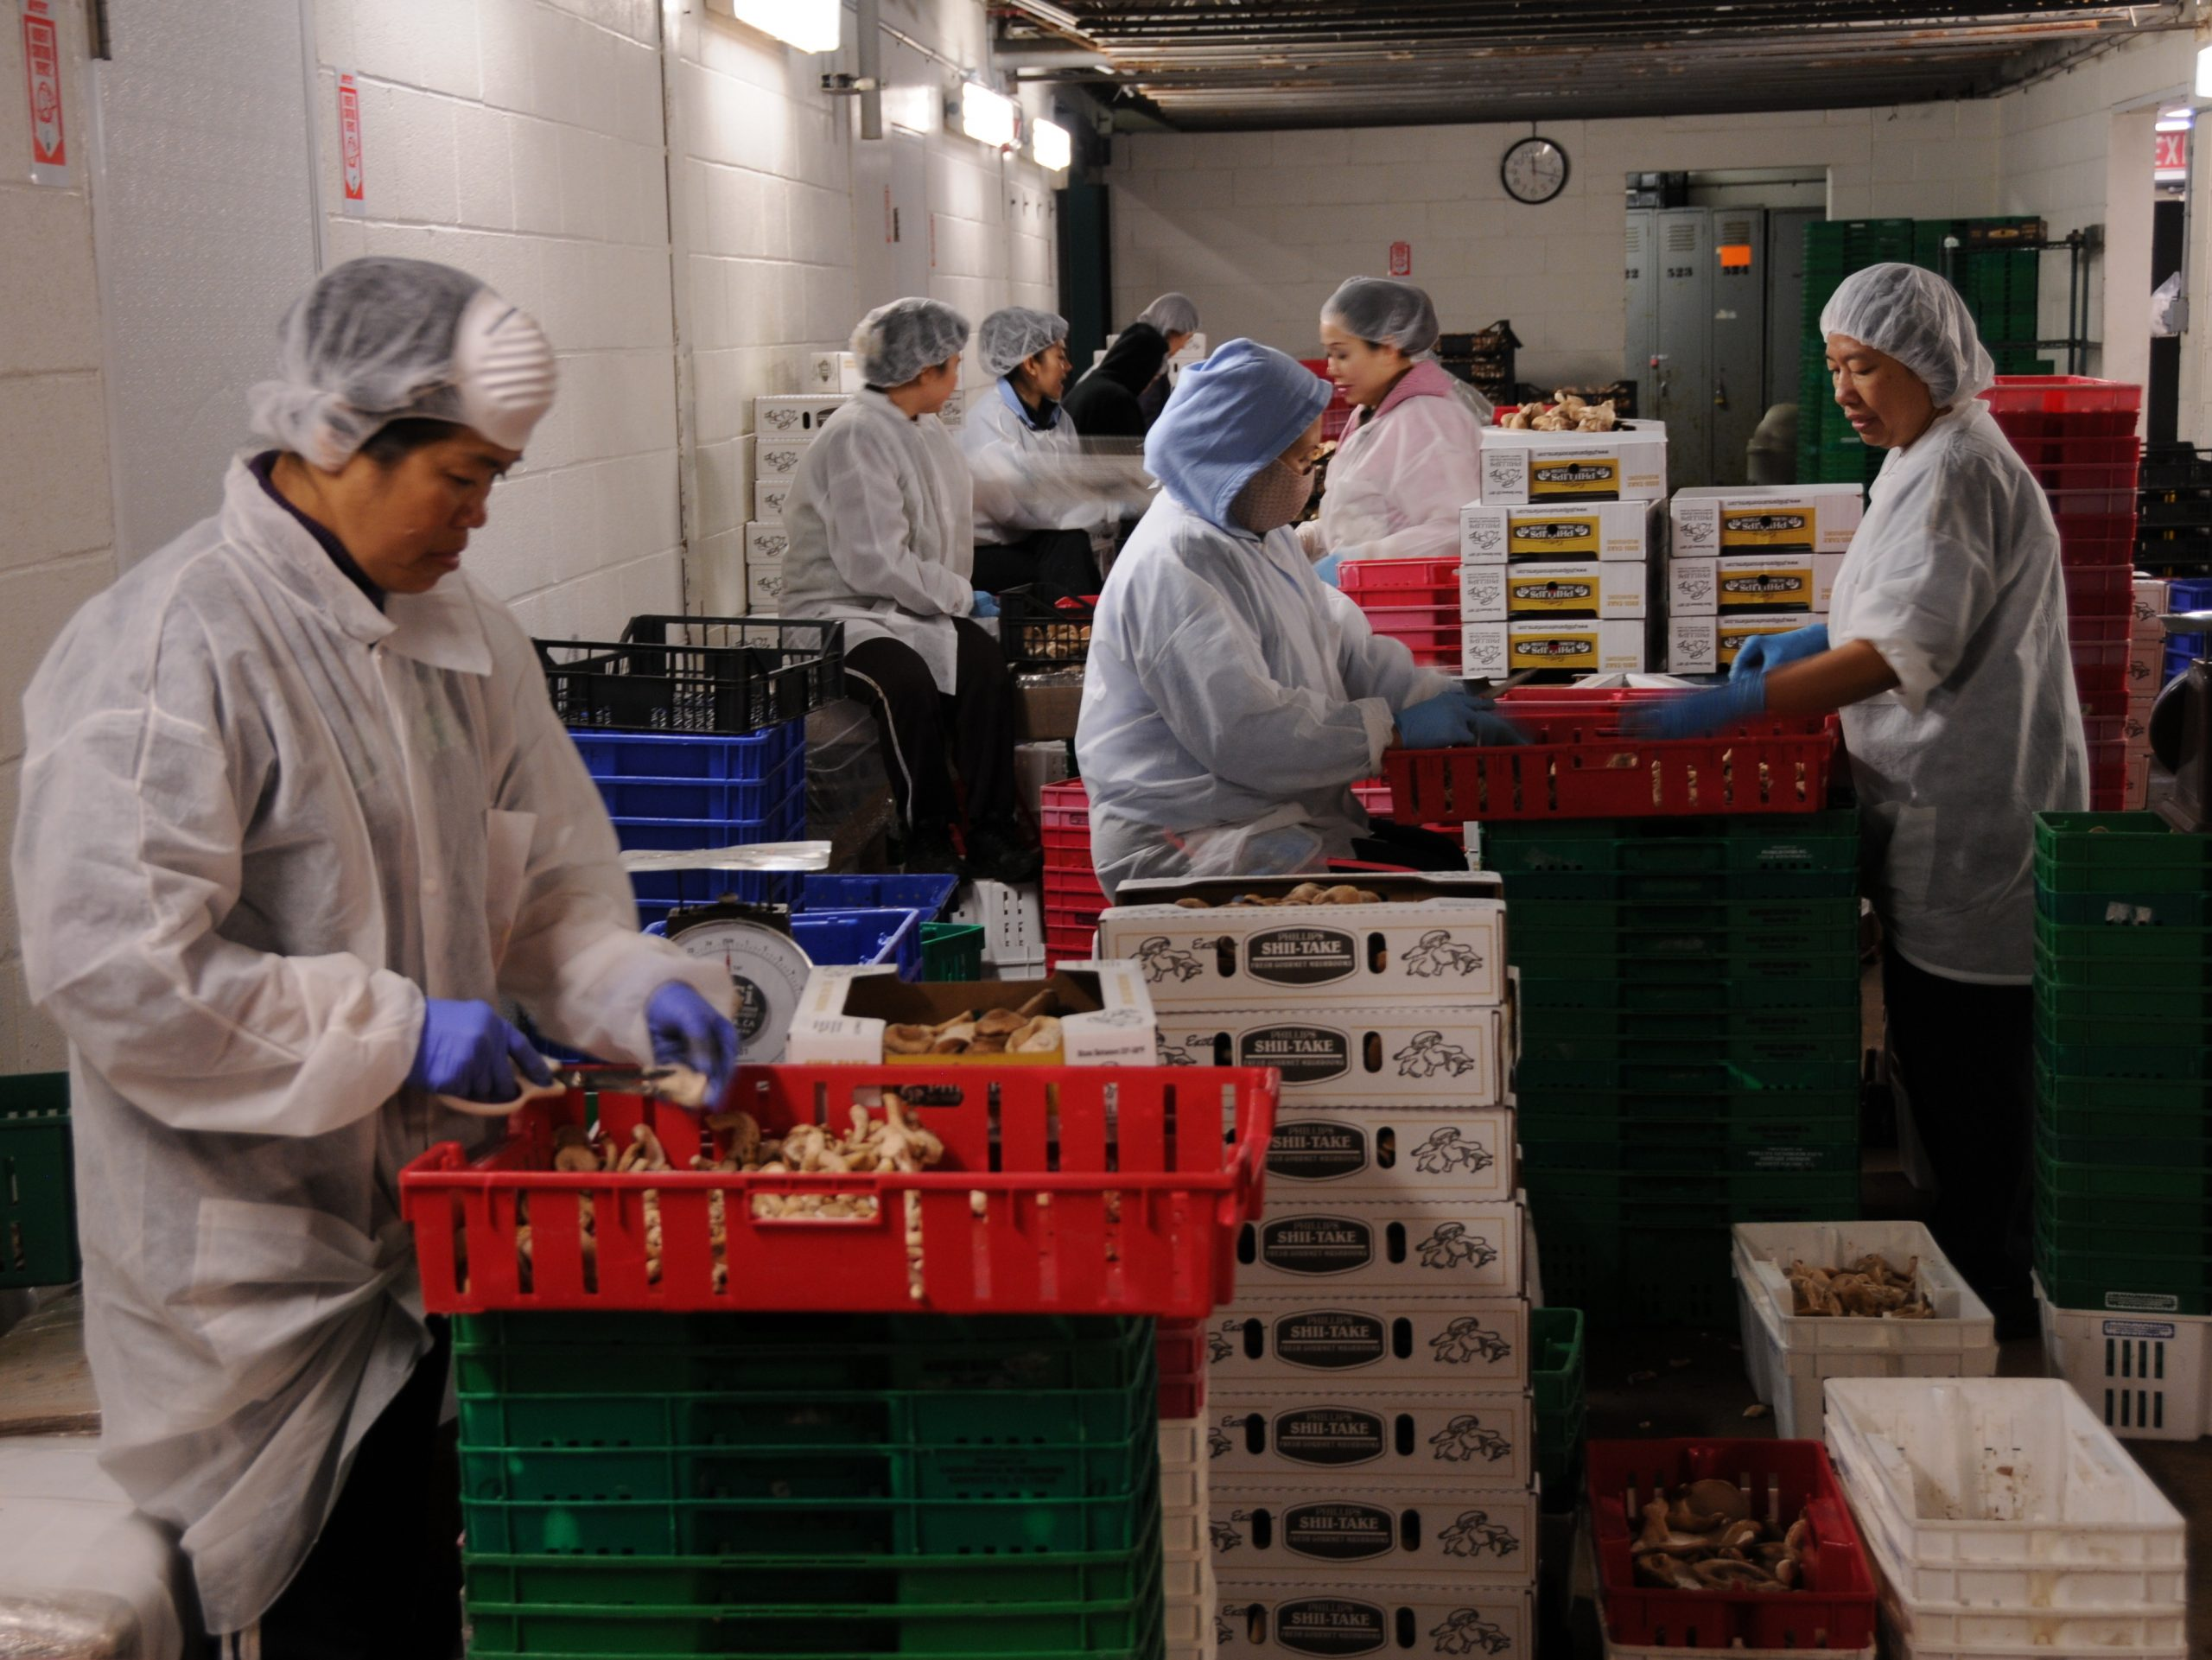 Southeast Asian workers cut shiitake mushrooms at Phillips Mushroom Farms. The mushroom industry in Chester County, Pa., has relied on several waves of immigrant workers, beginning with Italians in the late 1800s.